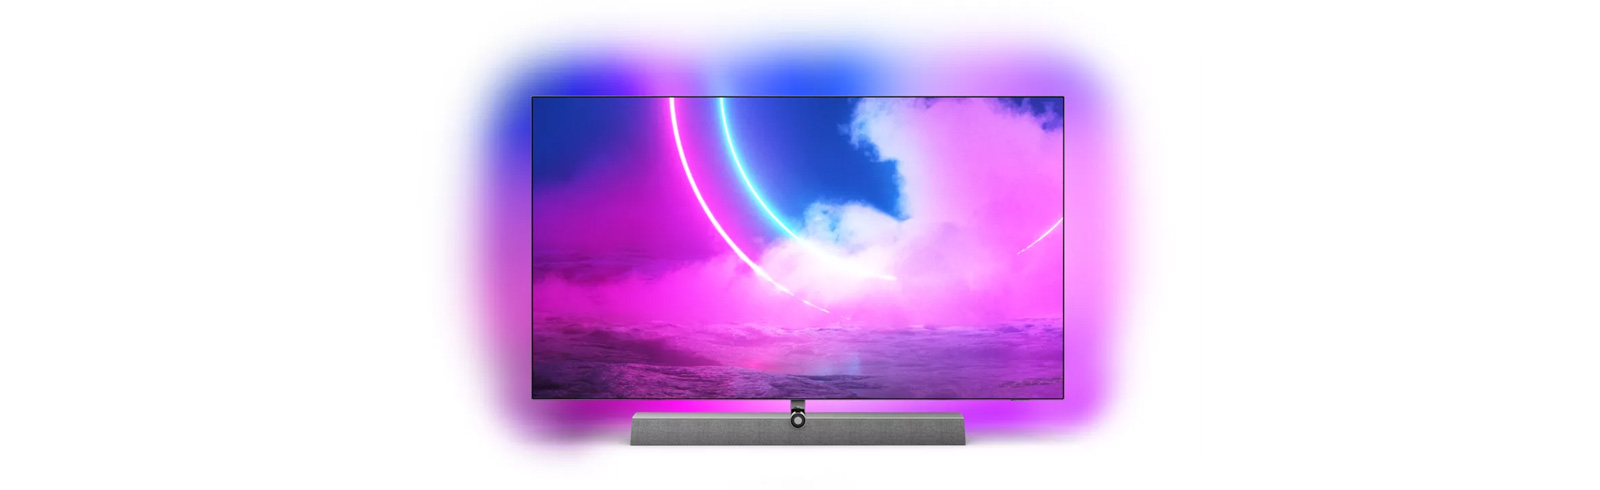 Philips OLED935 series is launched including 48OLED935, 55OLED935, 65OLED935 - specifications and prices